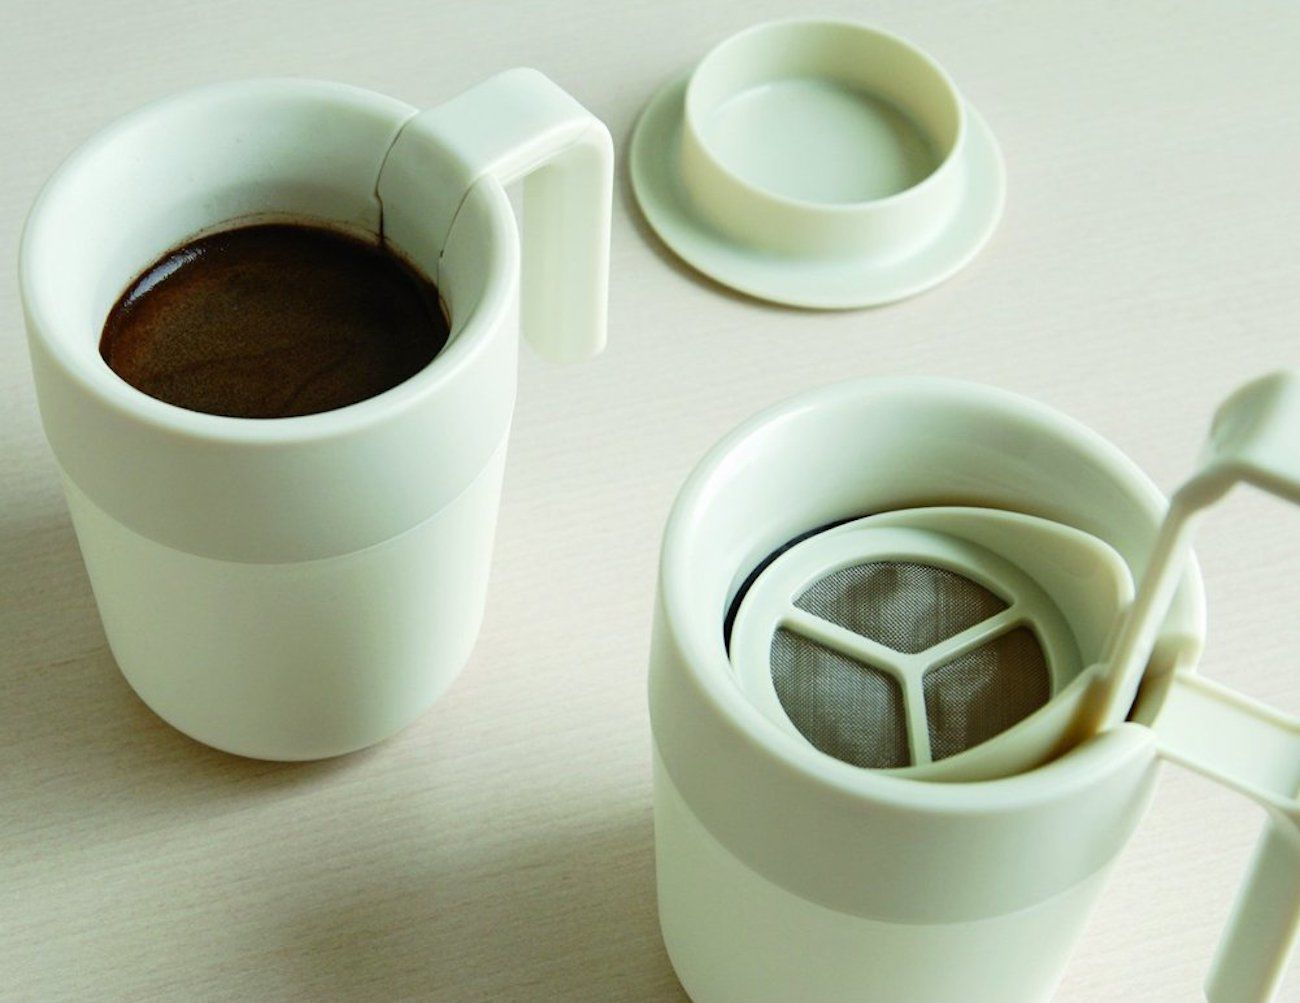 Kinto Cafe Press Instant Coffee Mug